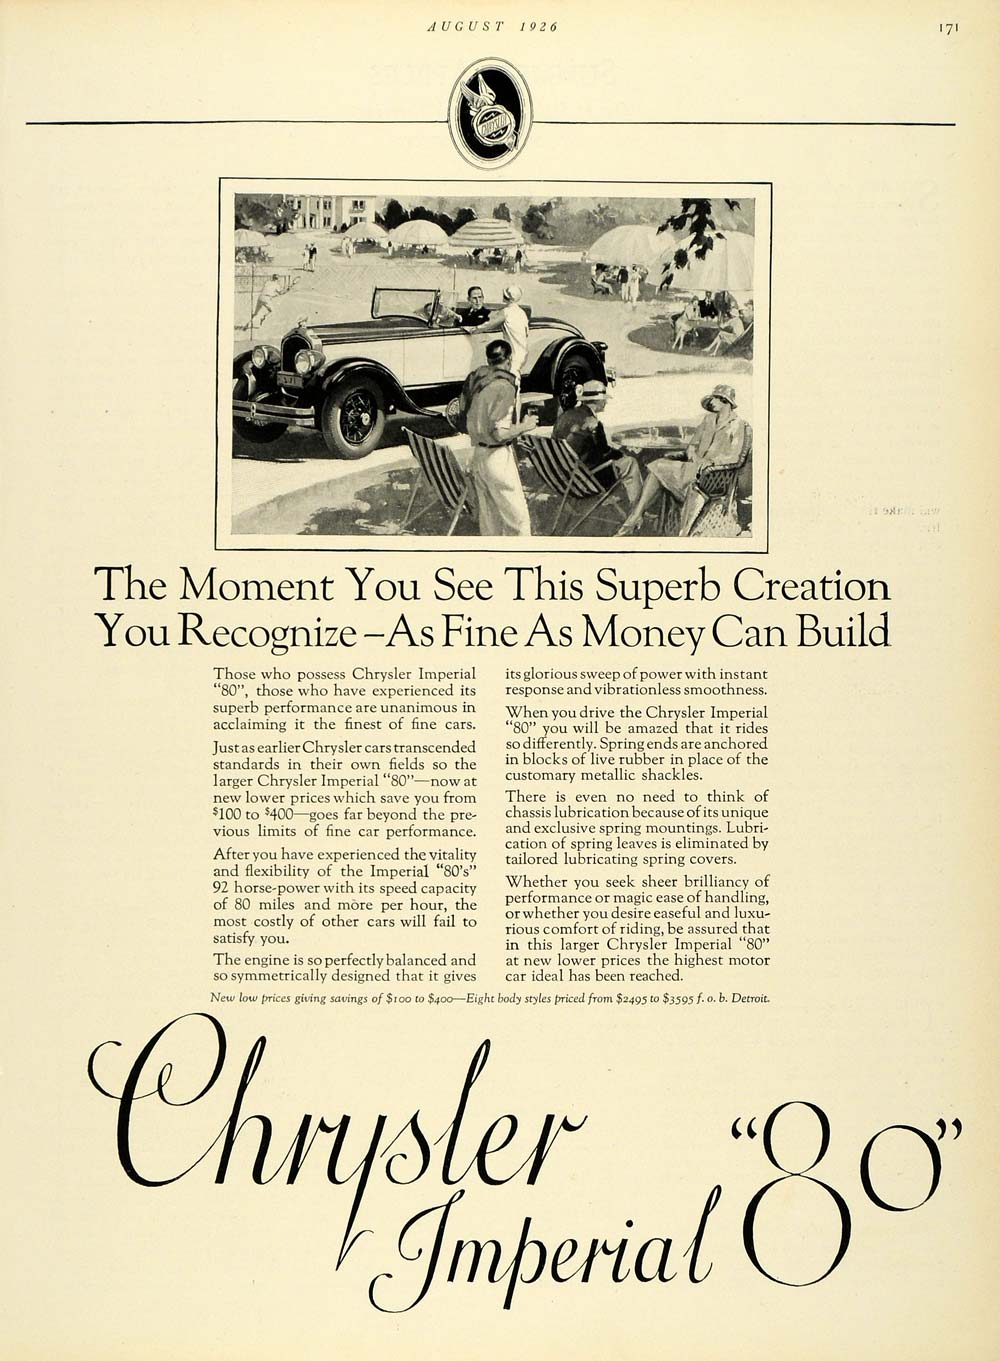 1926 Ad Chrysler Imperial 80 Vintage Tennis Automobile Motor Vehicle Car HB2